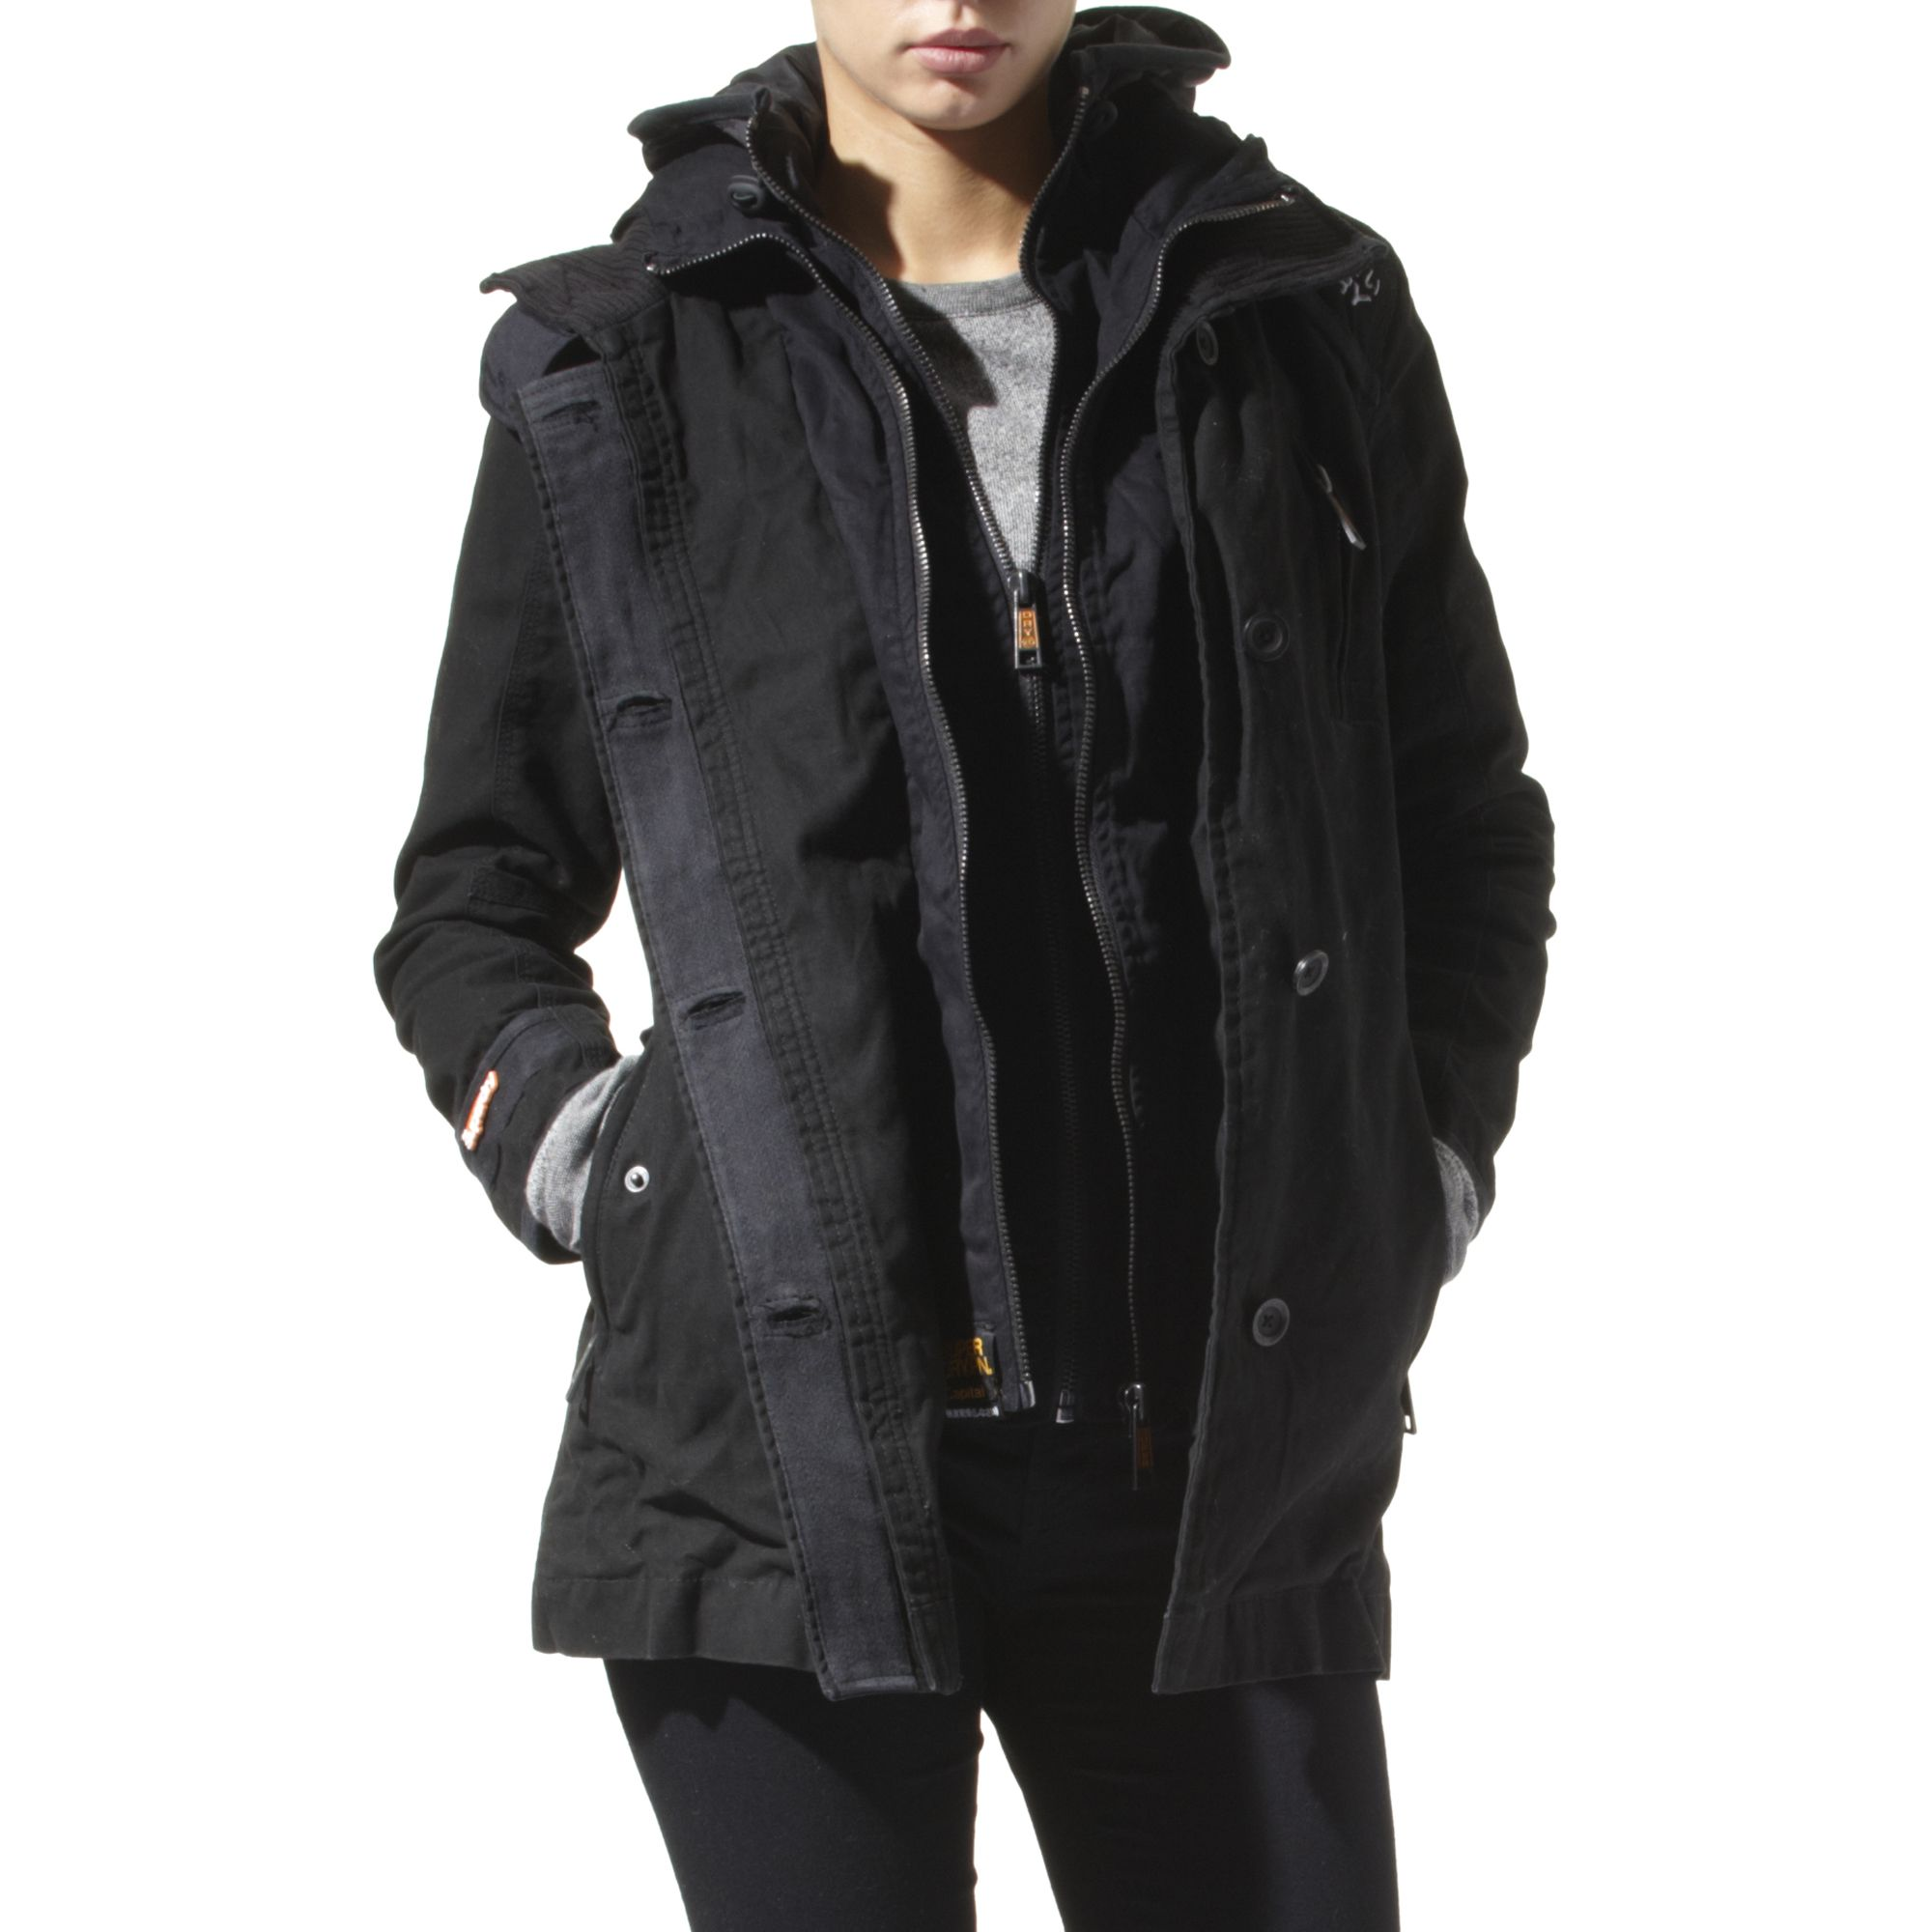 black trench coat with hood - photo #20